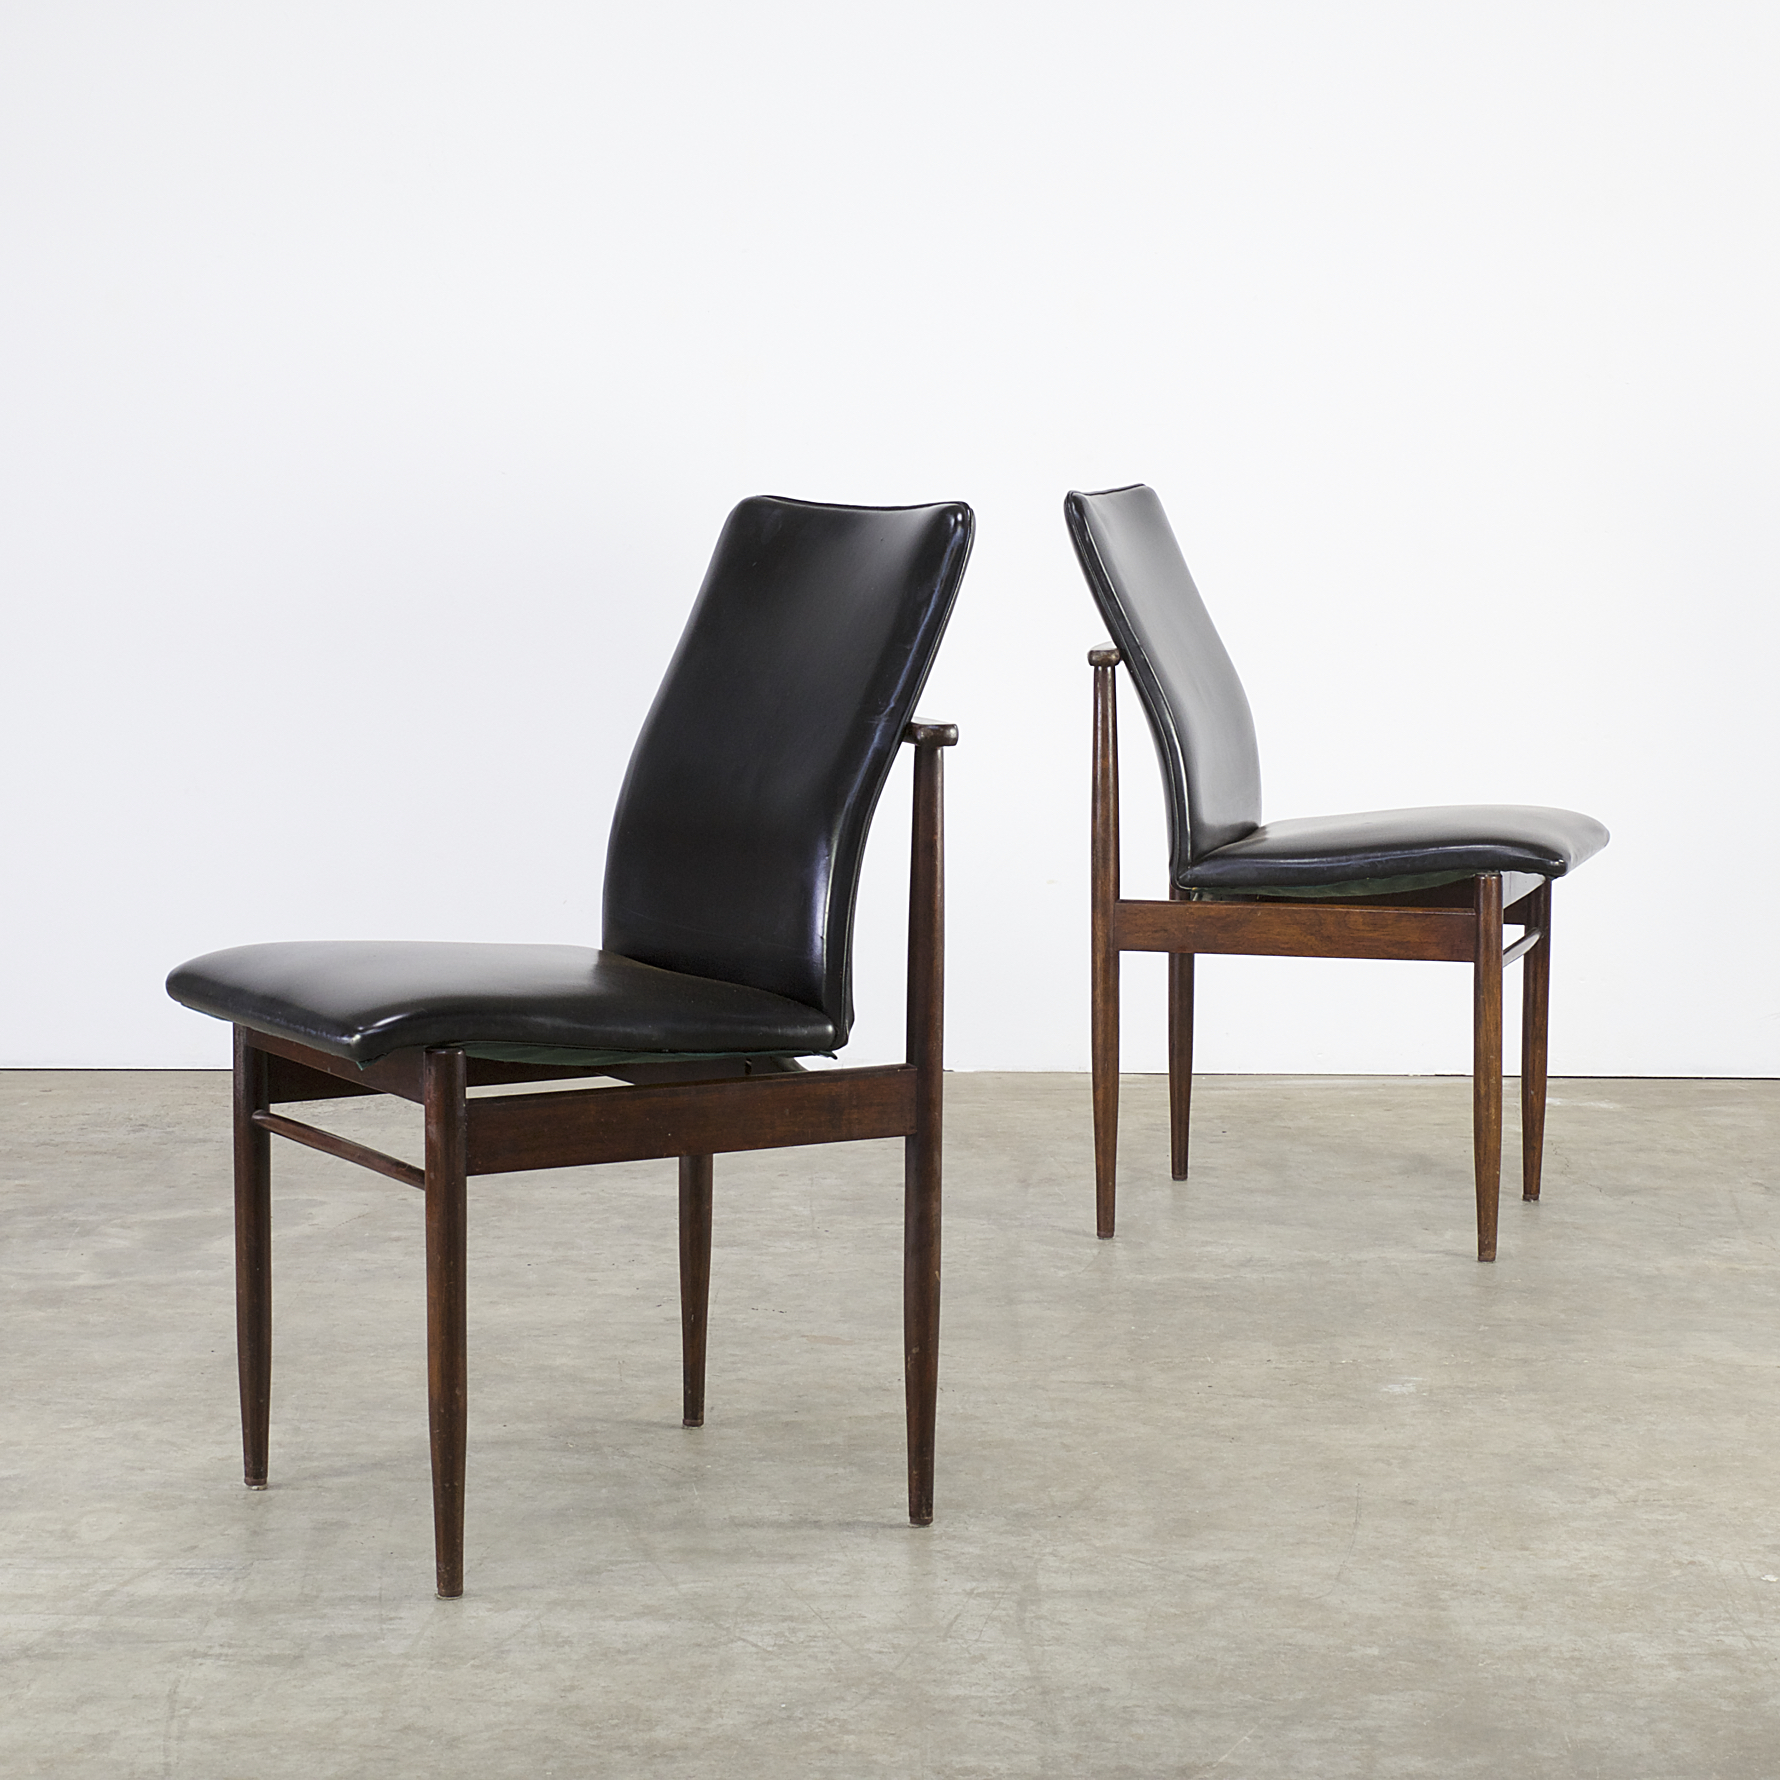 60s rosewood dining chairs for fristho set 2 barbmama for 60s chair design